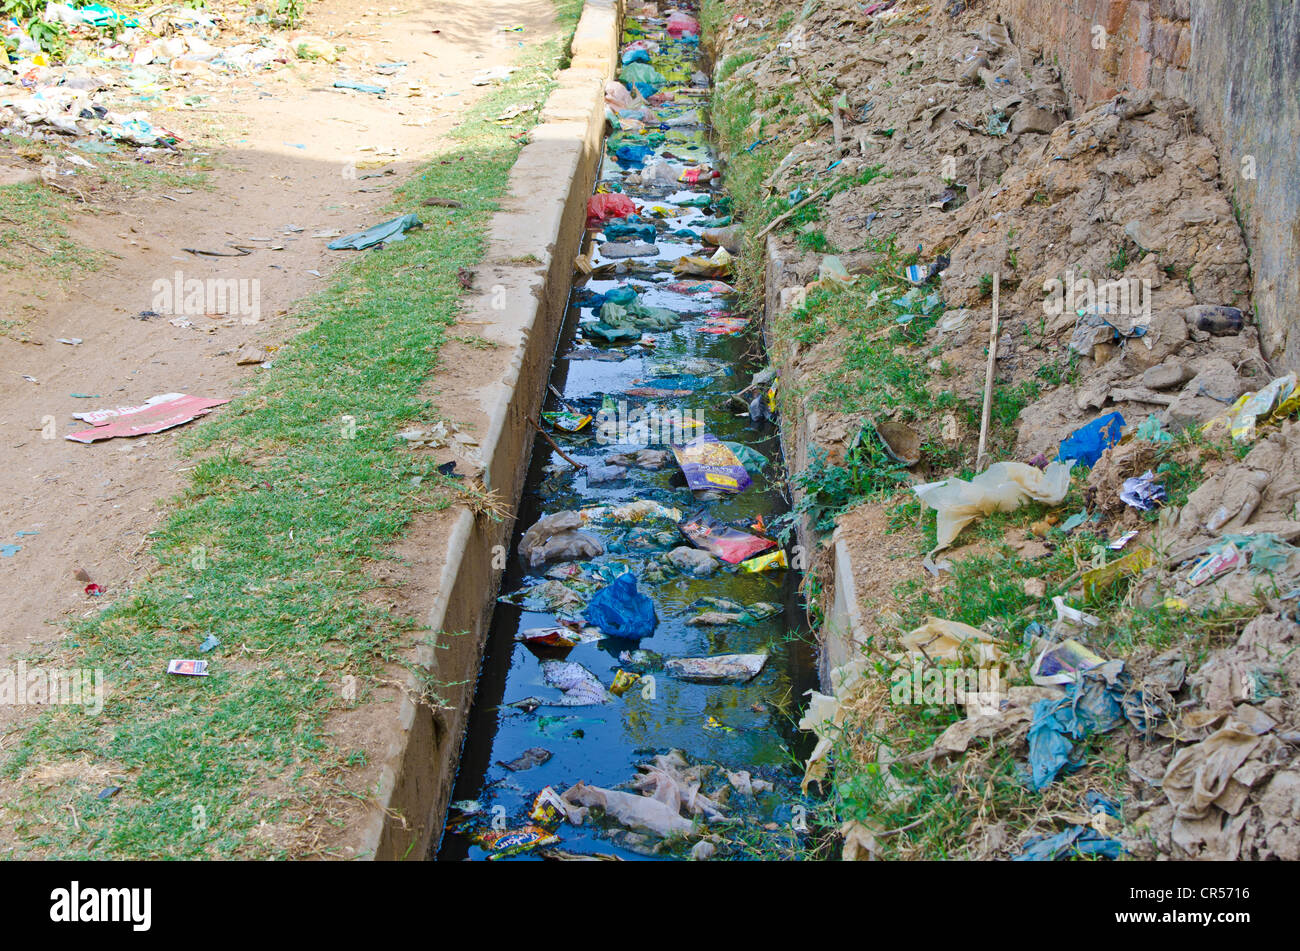 Sewage water polluted by plastic bags - Stock Image